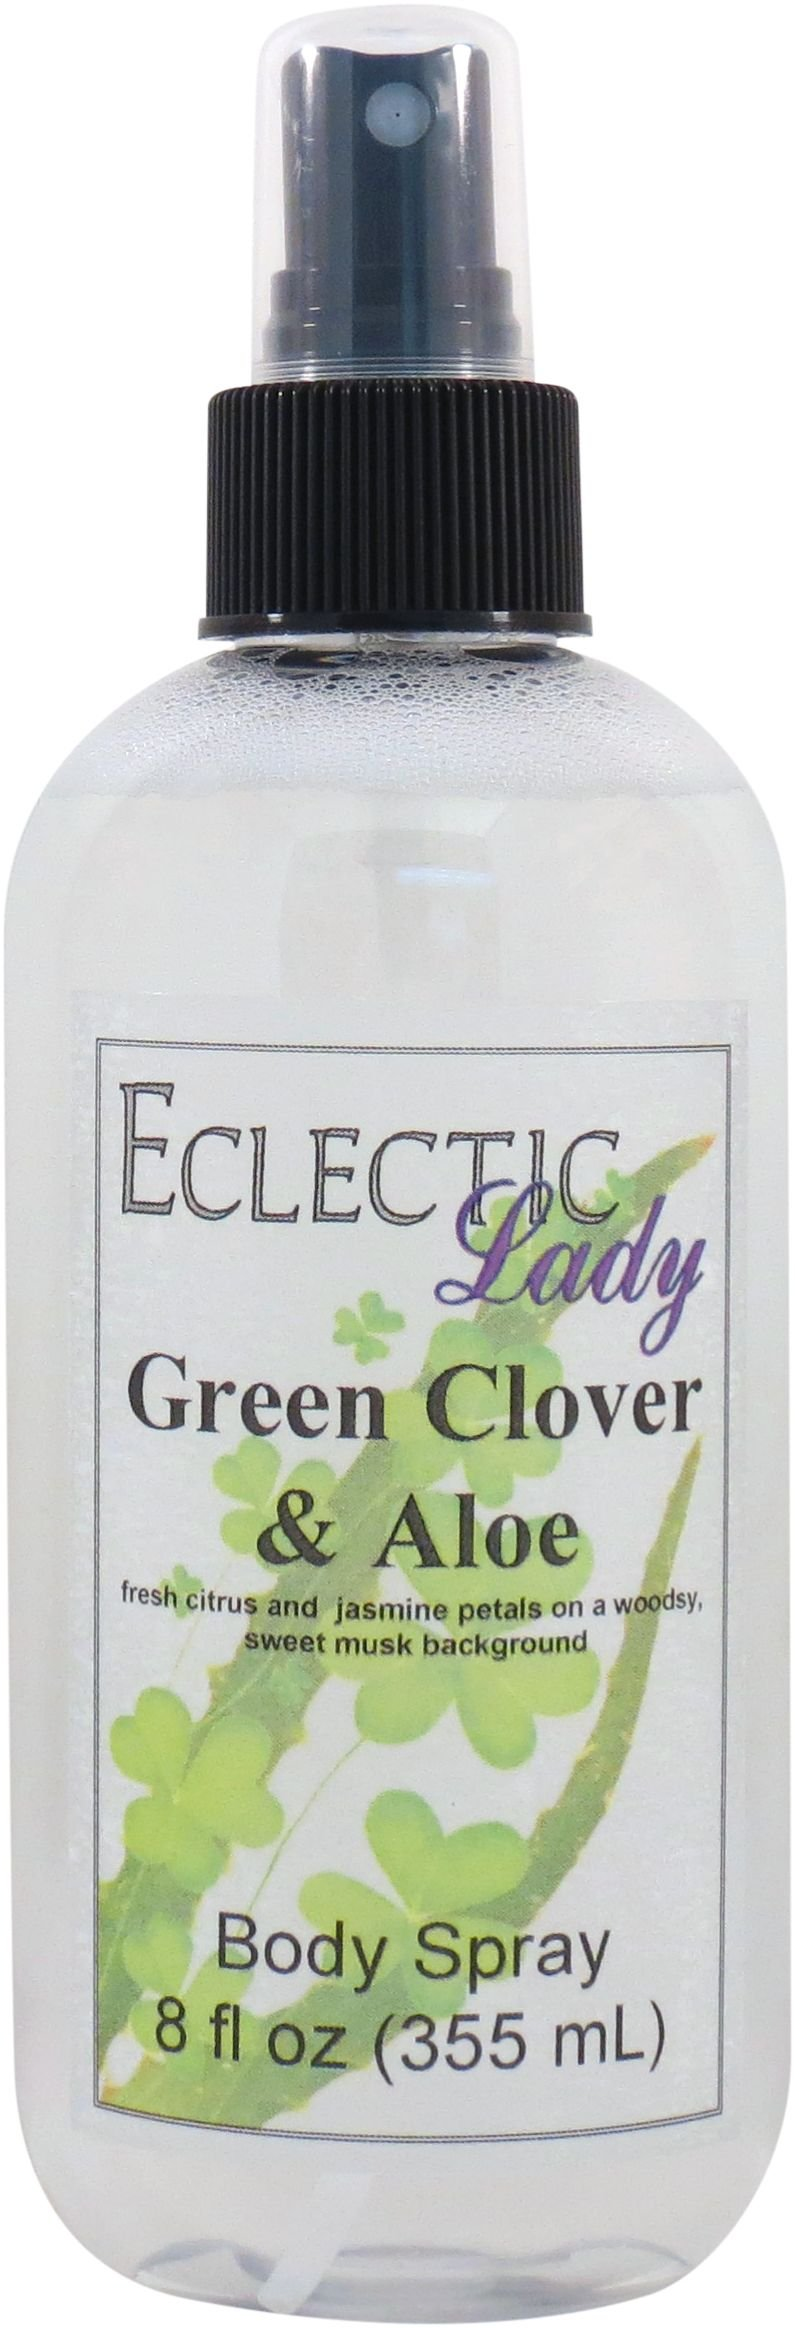 Green Clover And Aloe Body Spray, 8 ounces